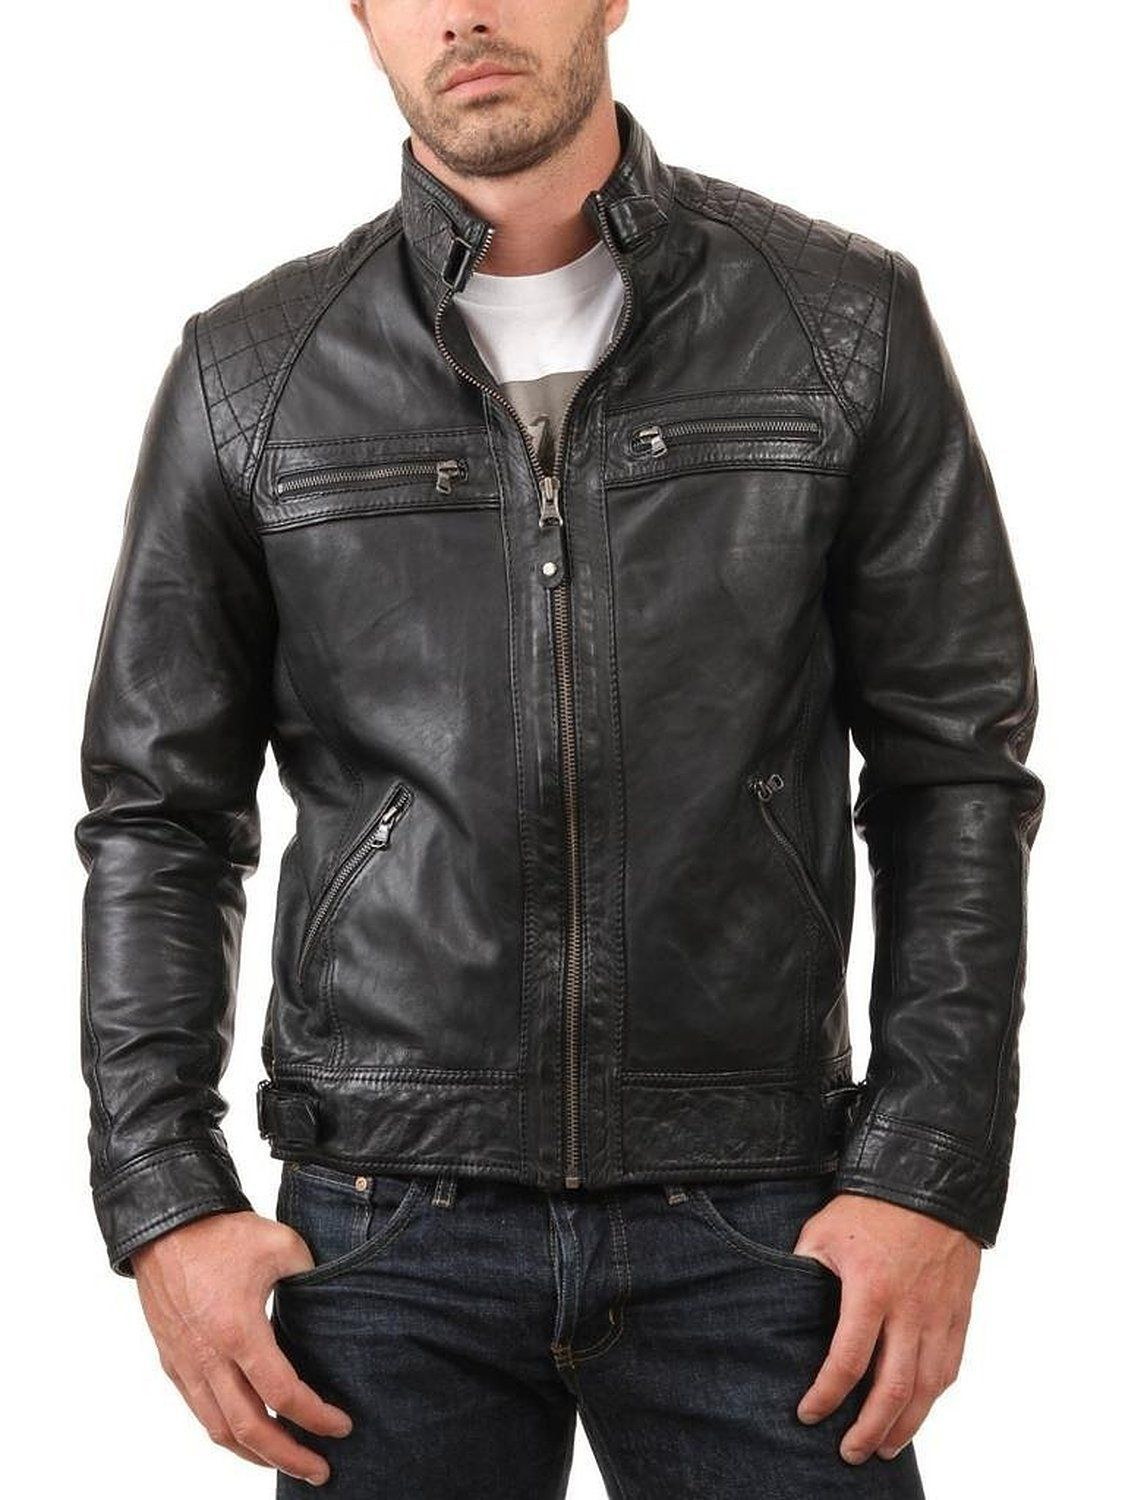 Western Leather Men's Leather Jacket Black at Amazon Men's